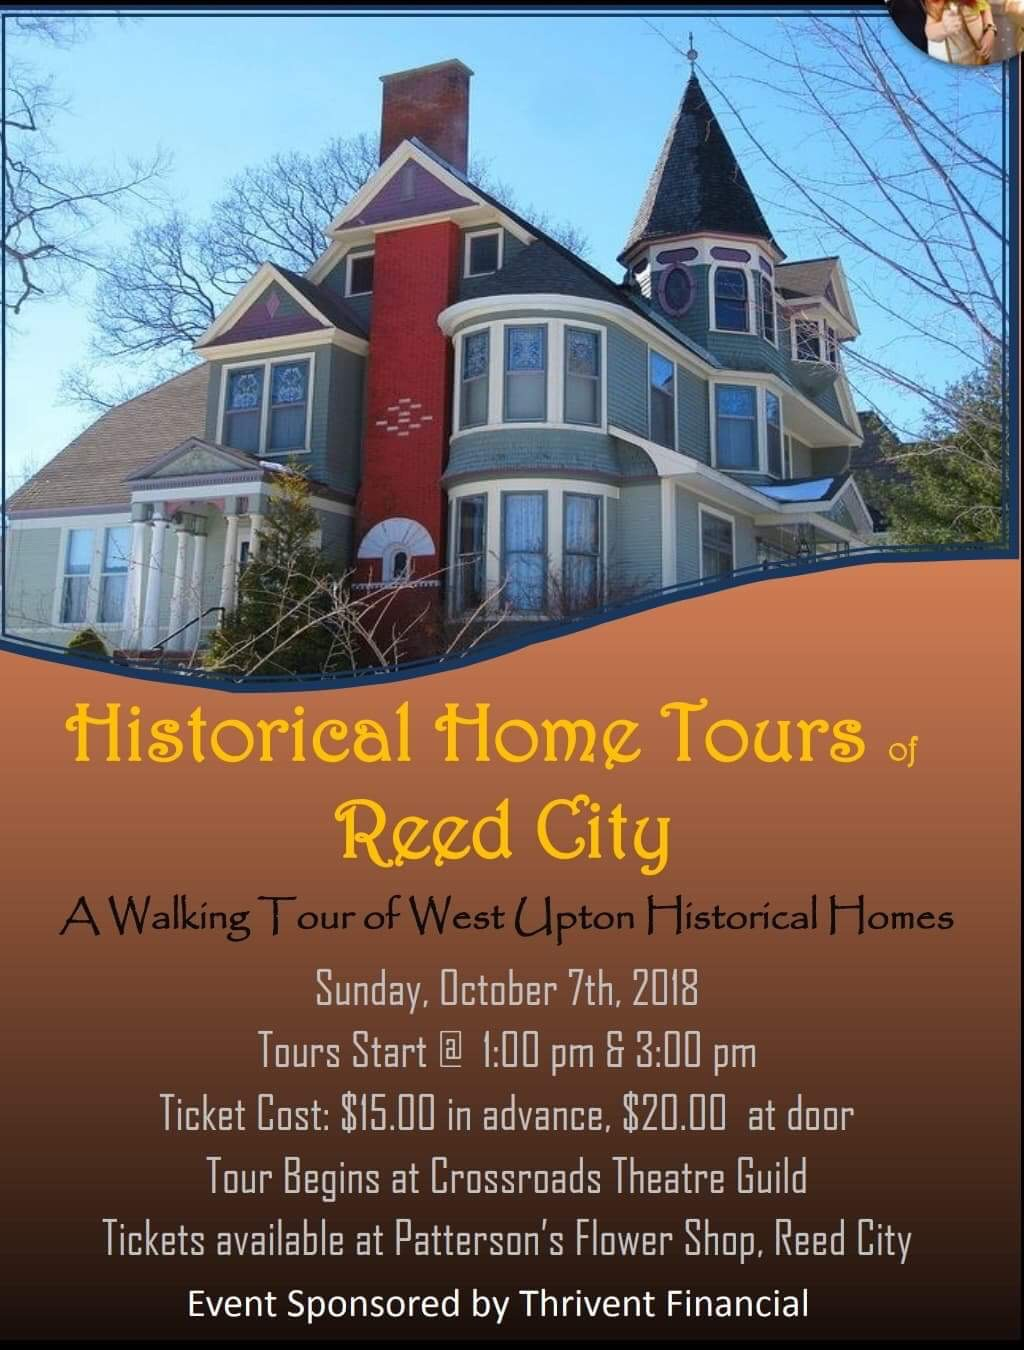 reed city home tour